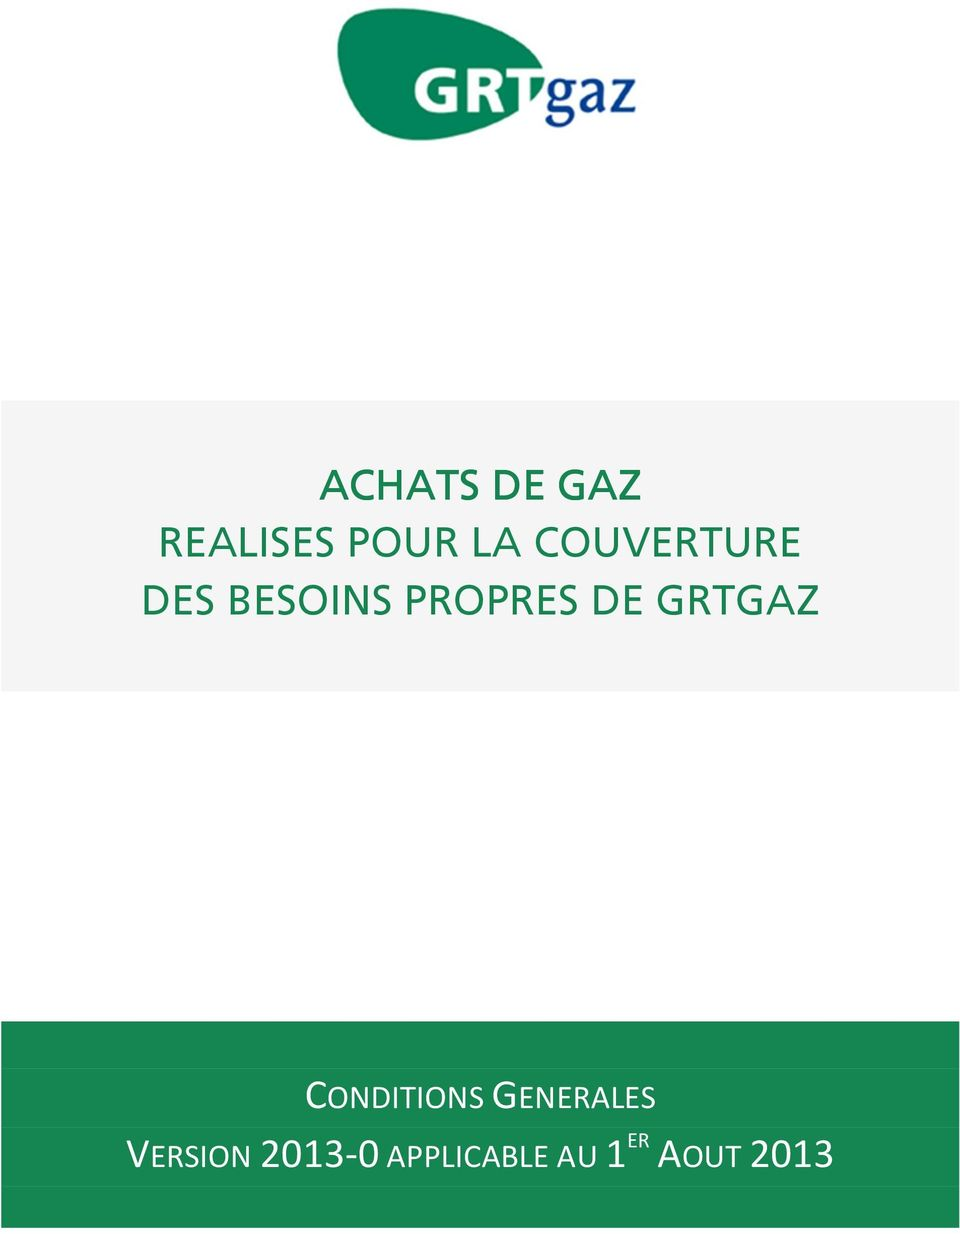 GRTGAZ CONDITIONS GENERALES